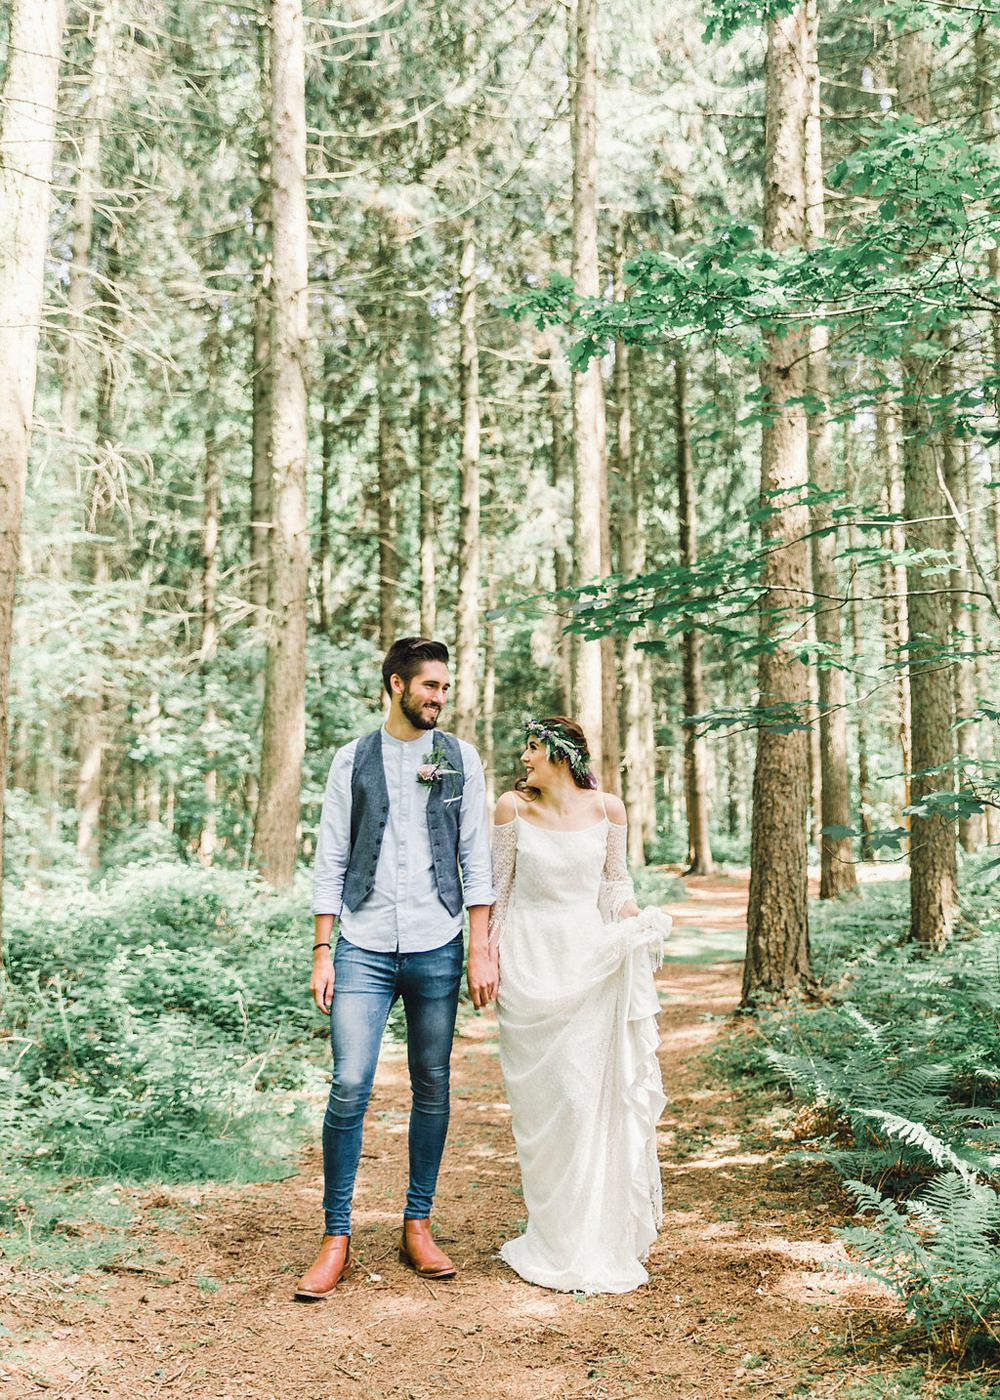 Groom Style Denim Jeans Waistcoat Shirt Boho Woodland Wedding Ideas Camp Katur Emily Olivia Photography